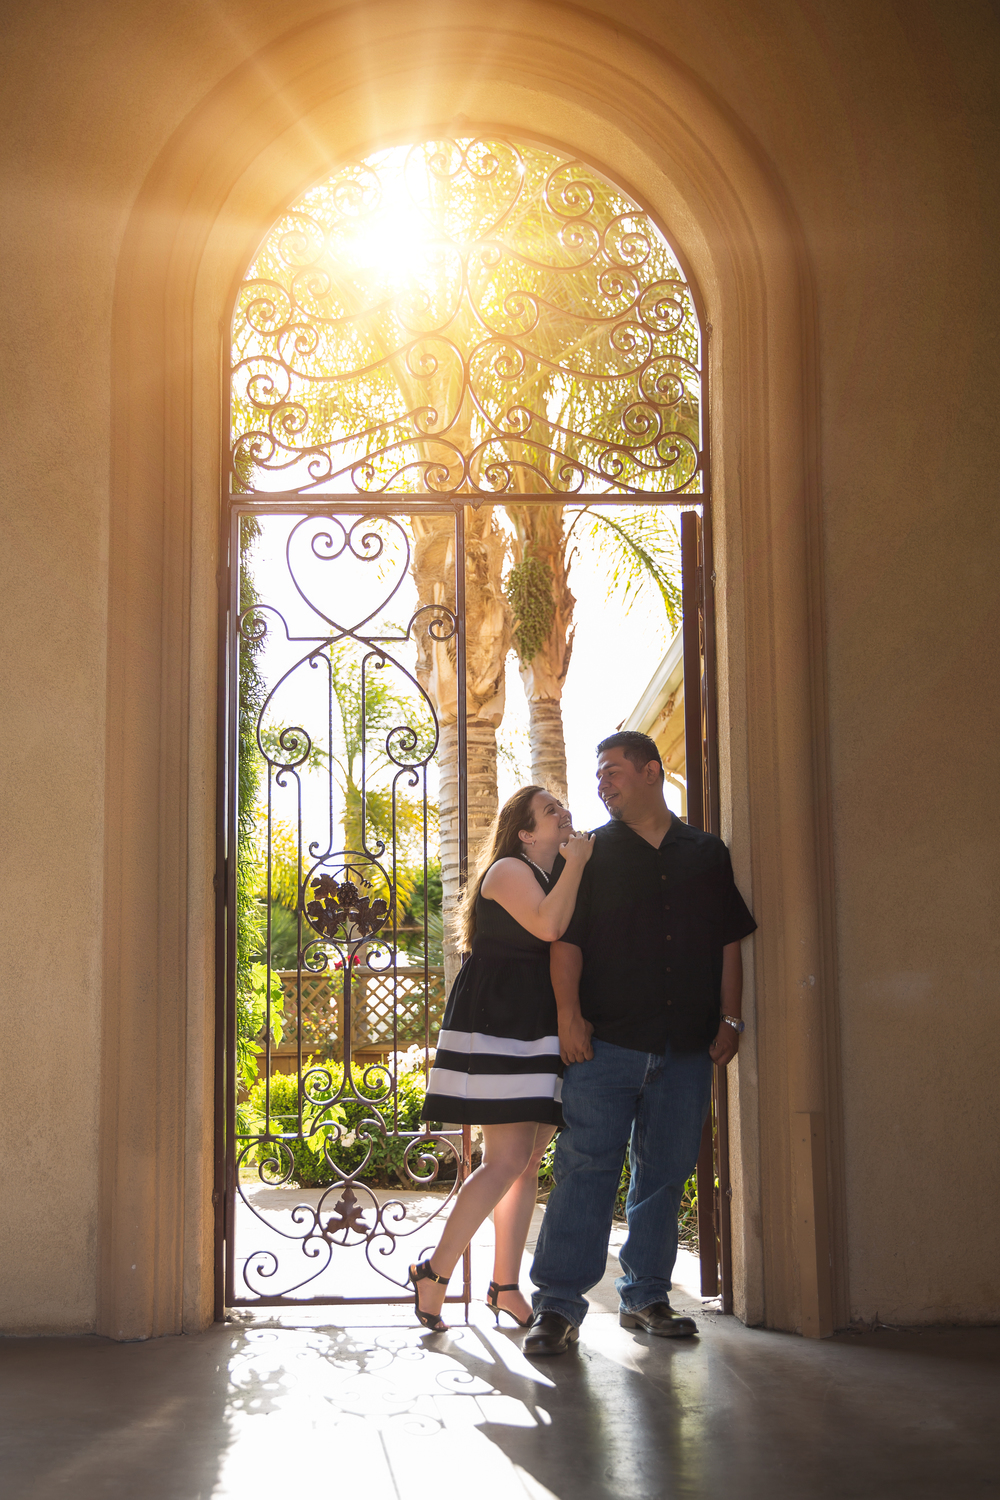 San Diego Photography - Kristen & Dan-032-Edit-High-Res.jpg